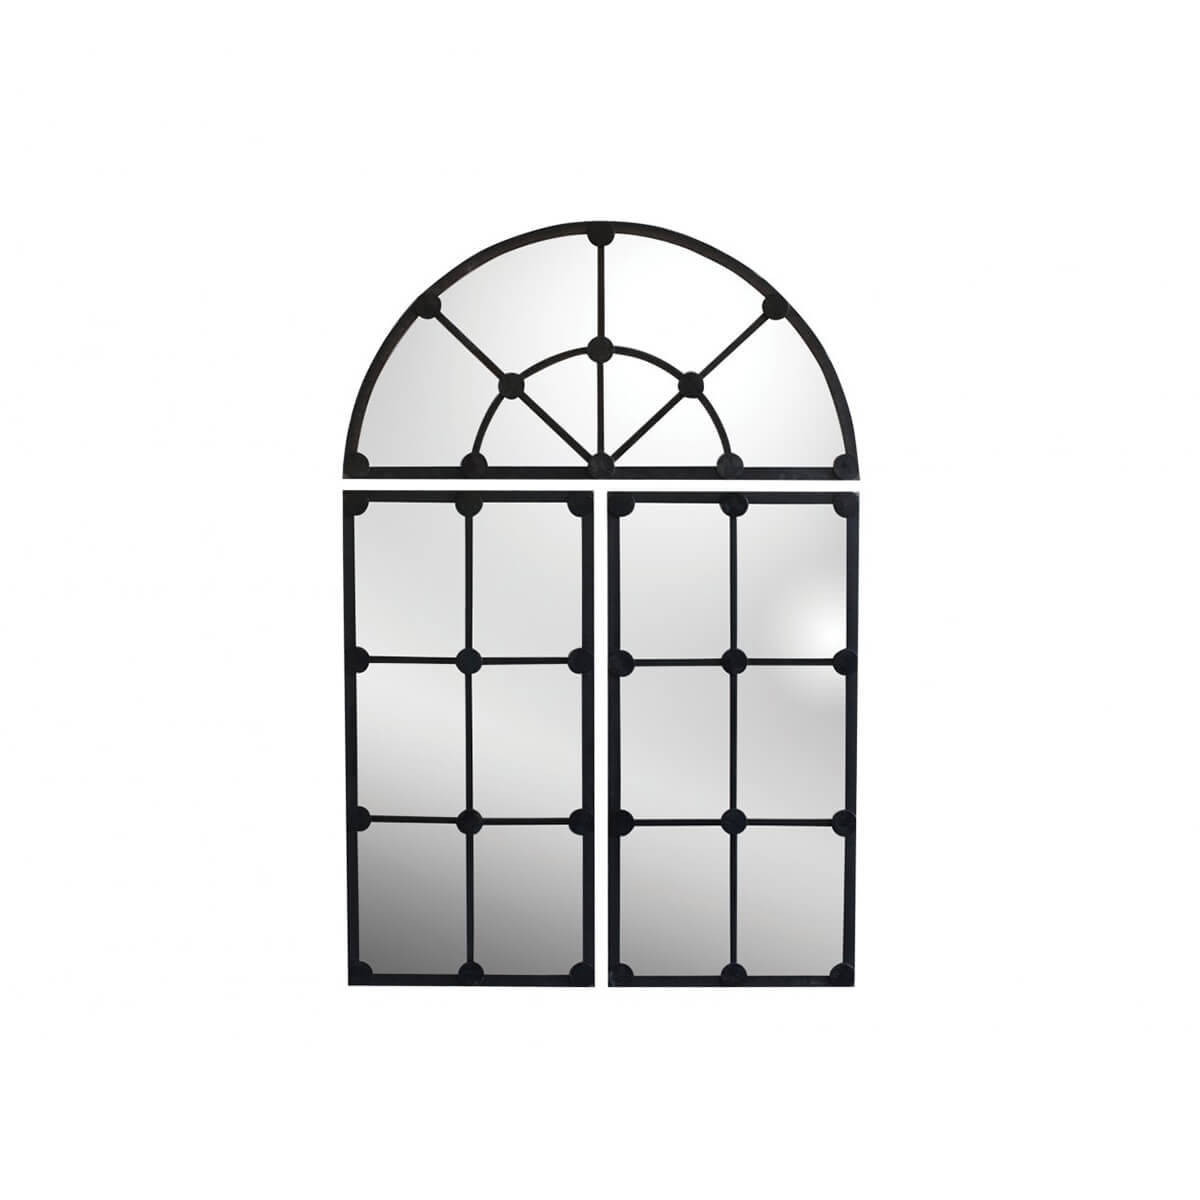 Conservatory-Window-Mirror-Small-CozyHome-Dubai